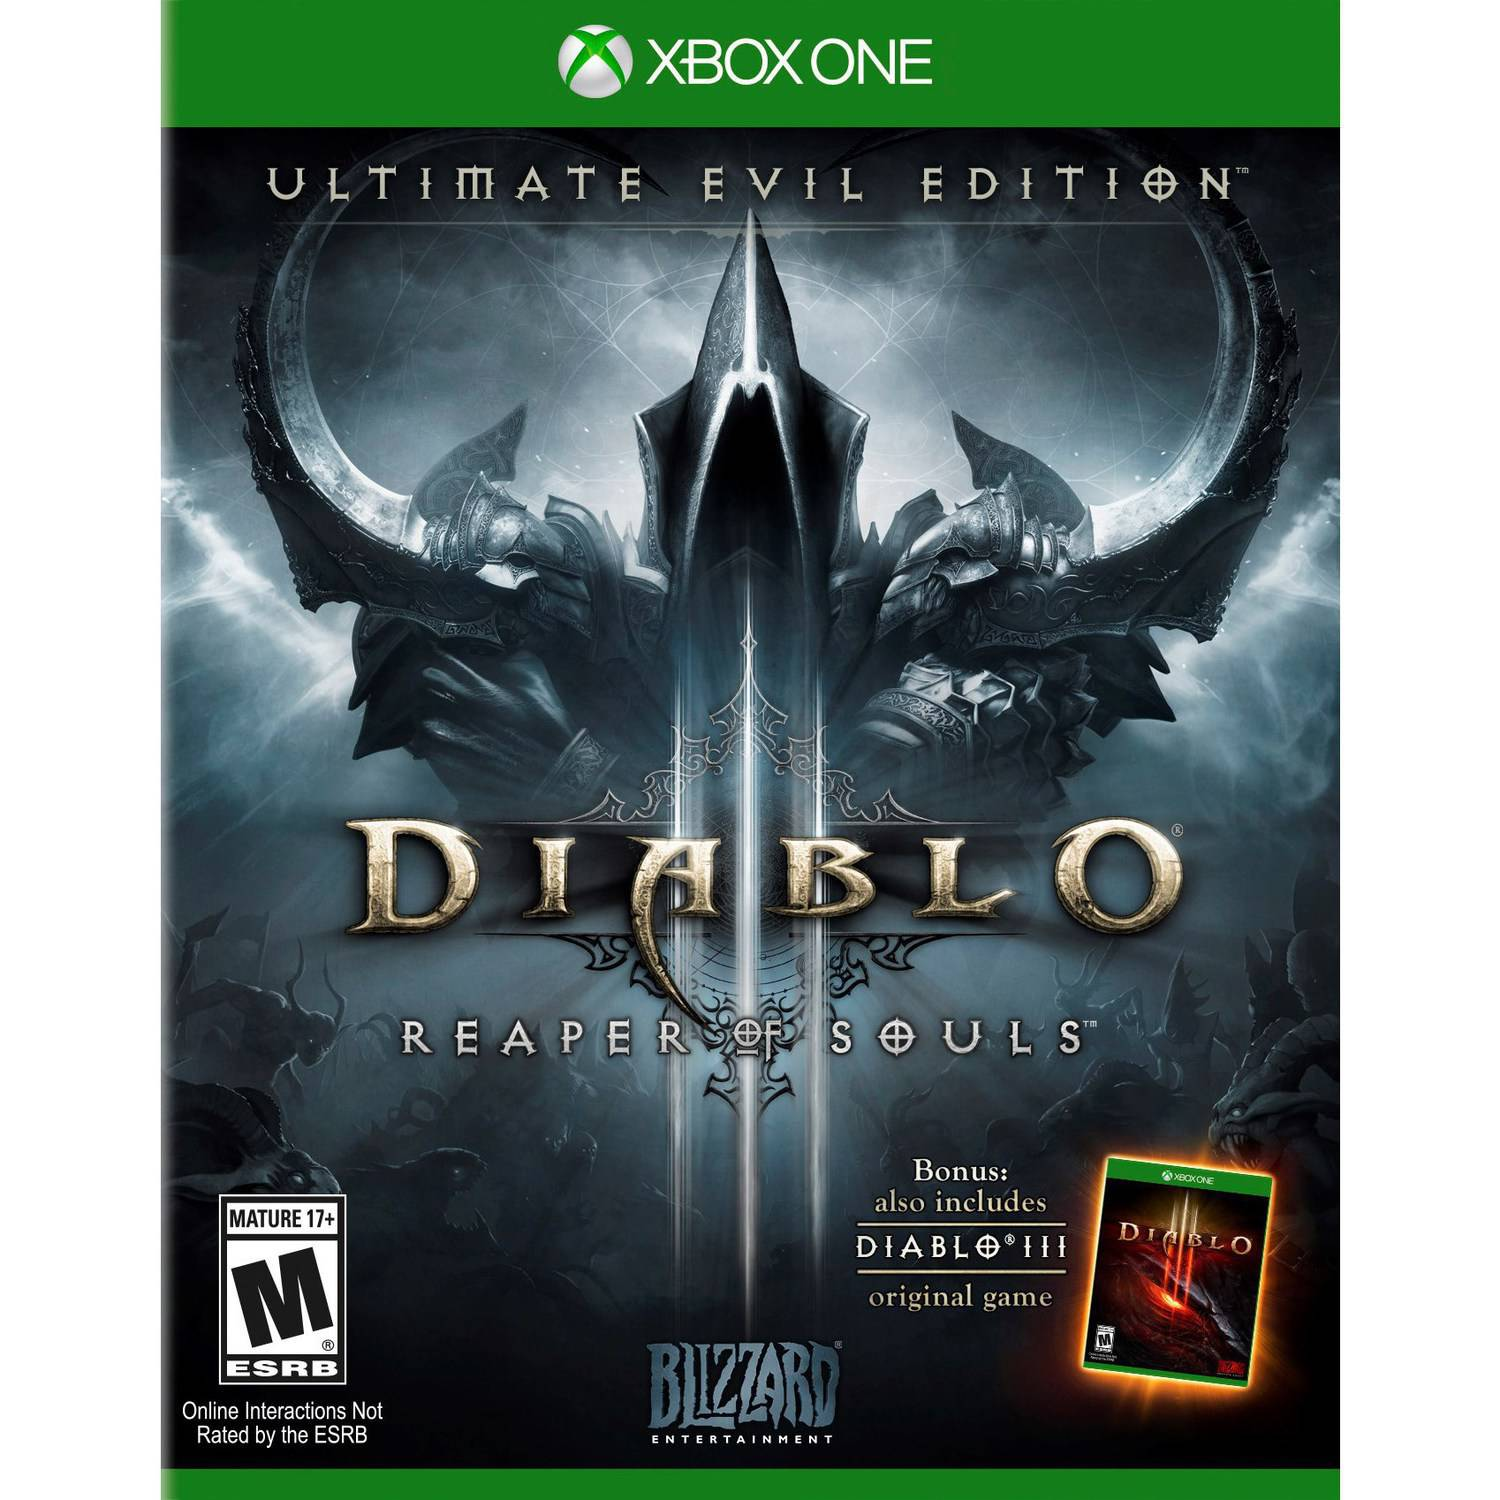 Diablo 3 Ultimate Evil Edition Blizzard Entertainment Xbox One